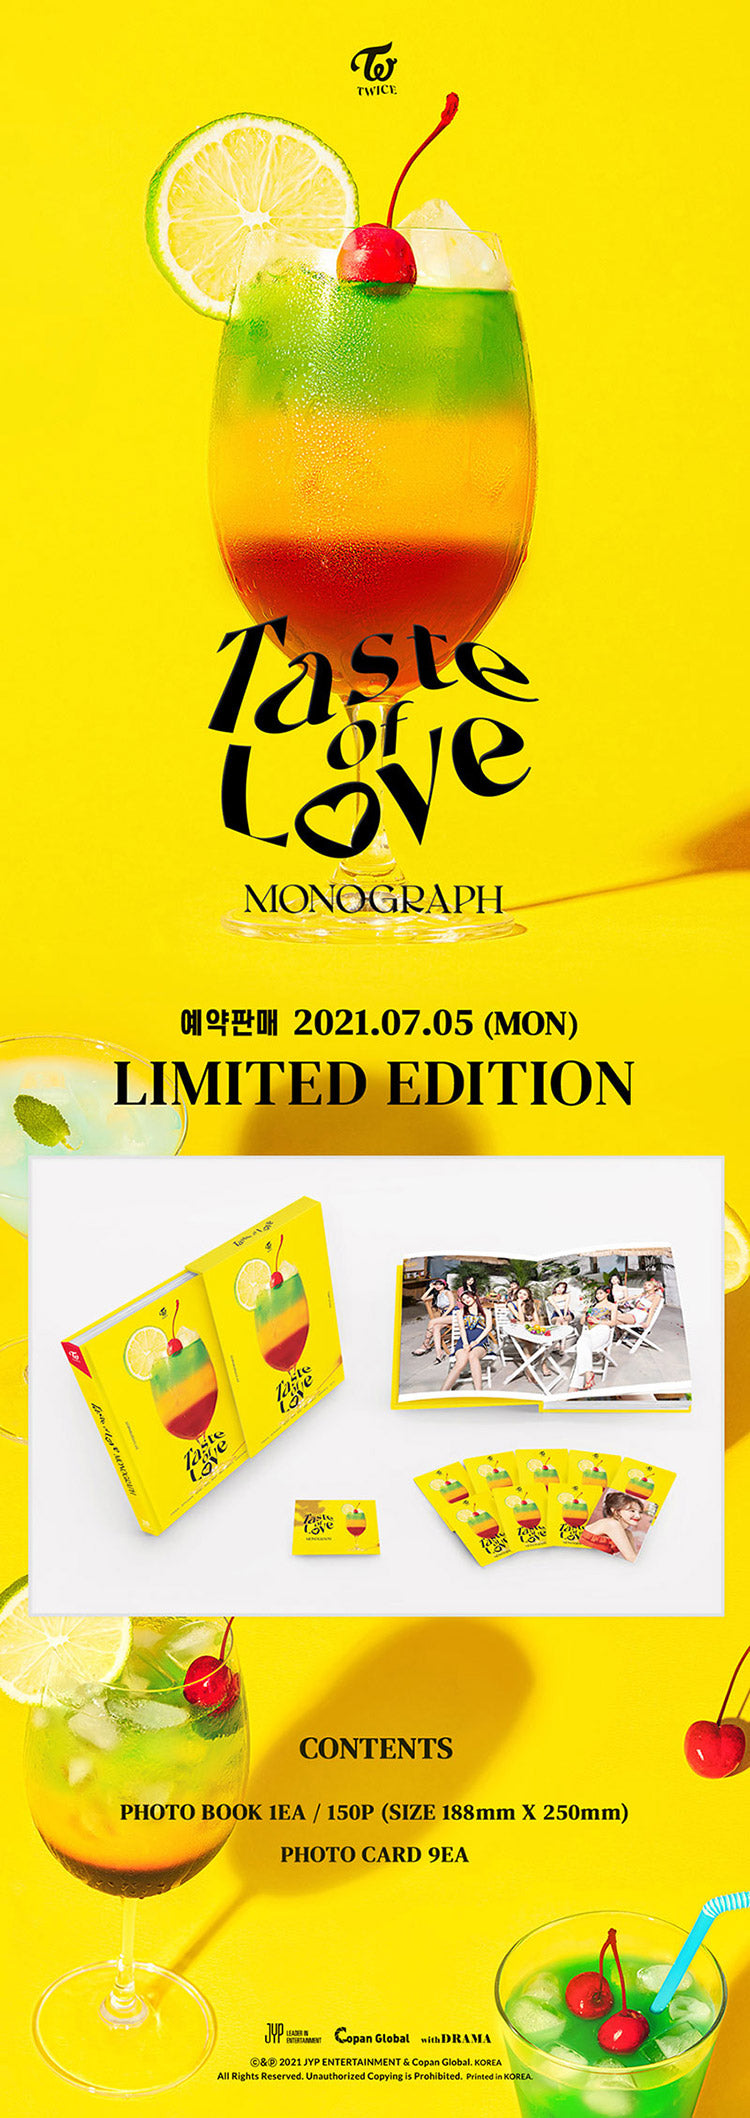 TWICE - MONOGRAPH [Taste of Love] Limited Edition